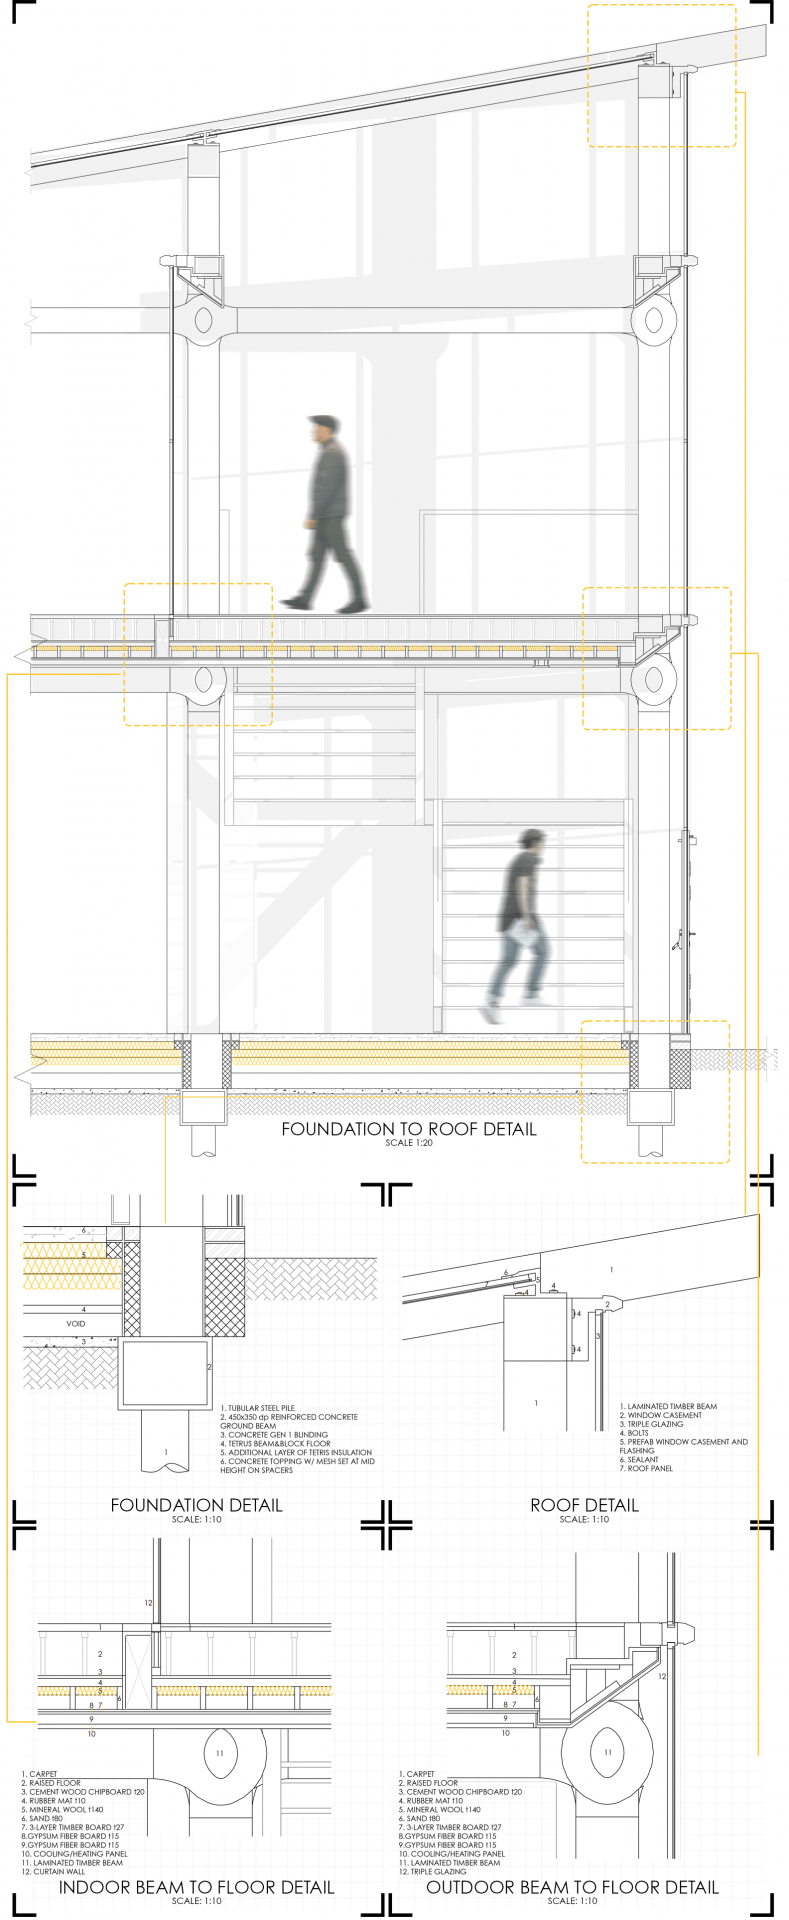 Design details, showcasing a 1:20 Foundation, to Roof Detail, along with 1:10 Details of the Foundation, Floor, and Roof to demonstrate materiality.